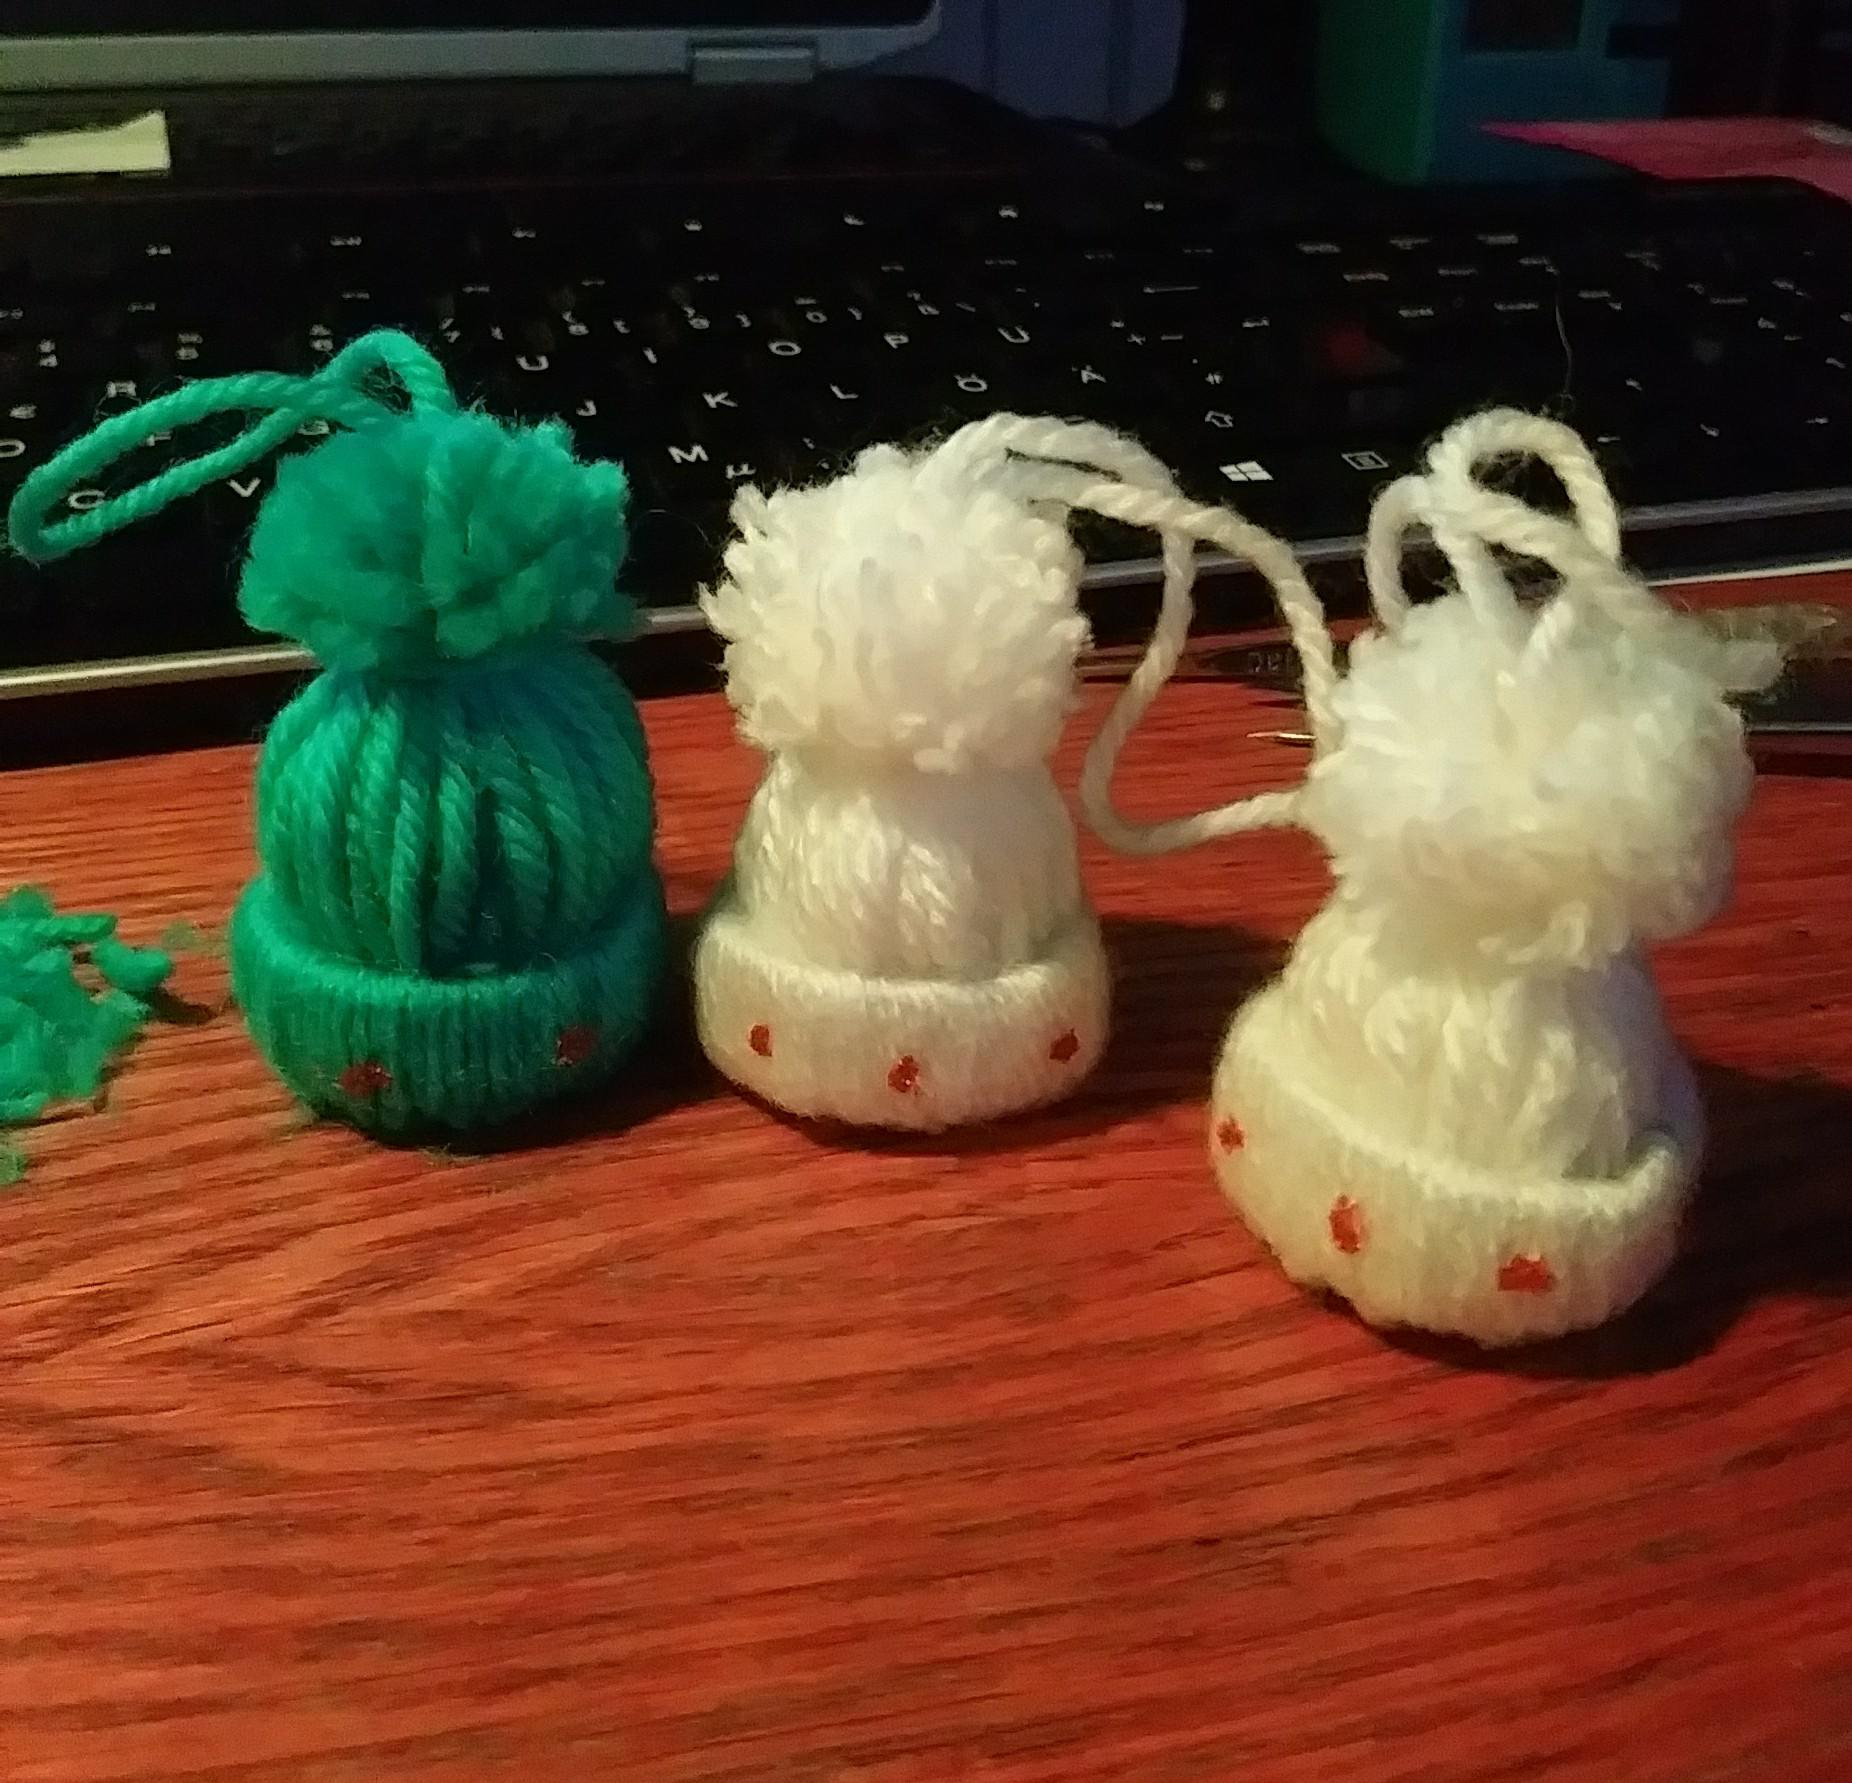 3197n8dxja161 - Inspired by some viral crafty videos, mini beanies I'm gonna give my sis as xmas decorations. - hobbies, crafts